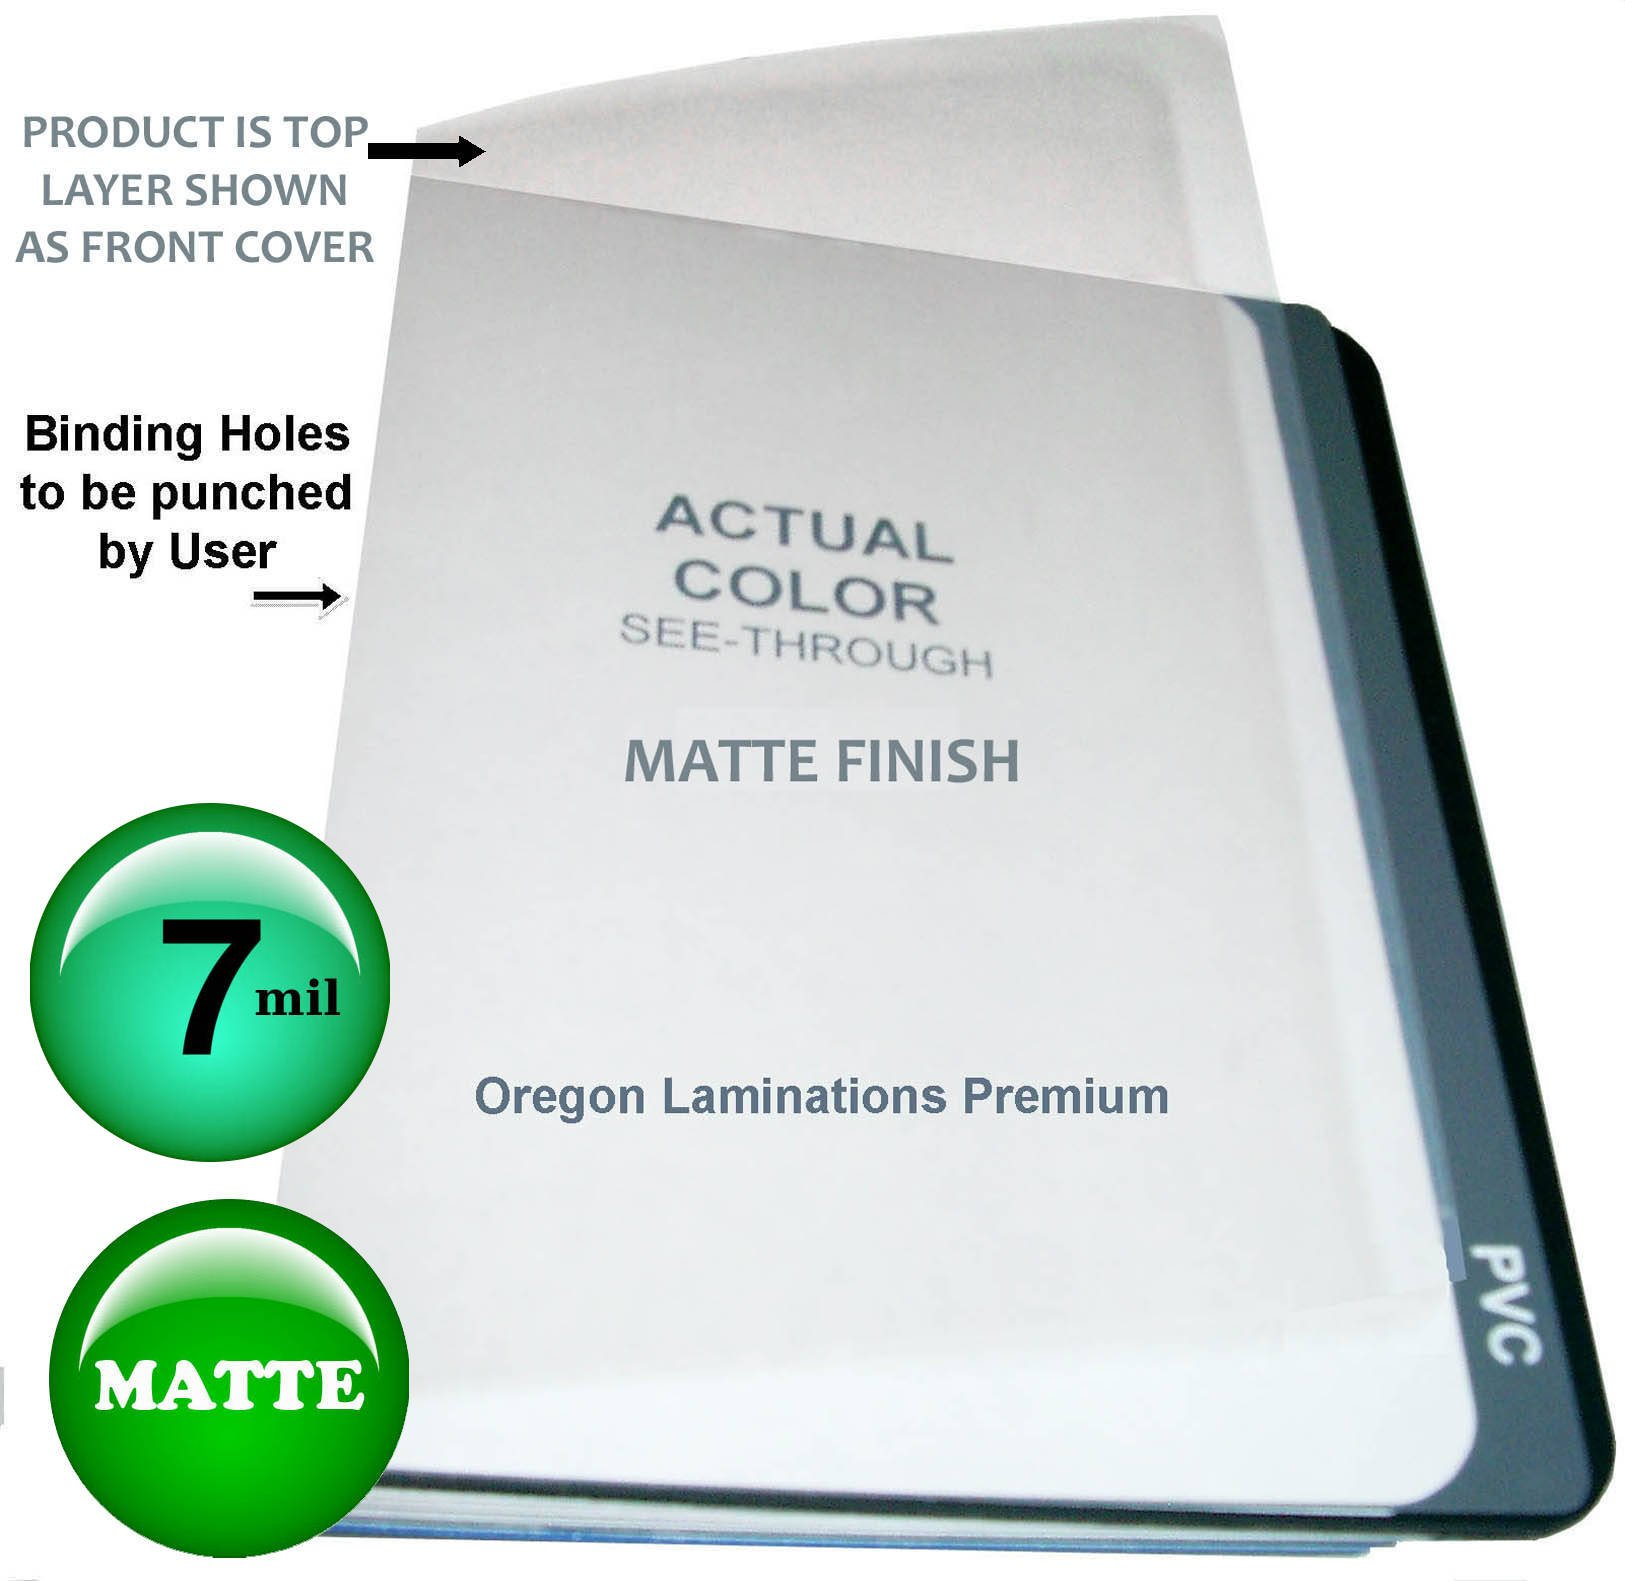 Qty 1000 Clear Matte Plastic Report Covers 7 Mil Binding Sheets 8-1/2 x 11